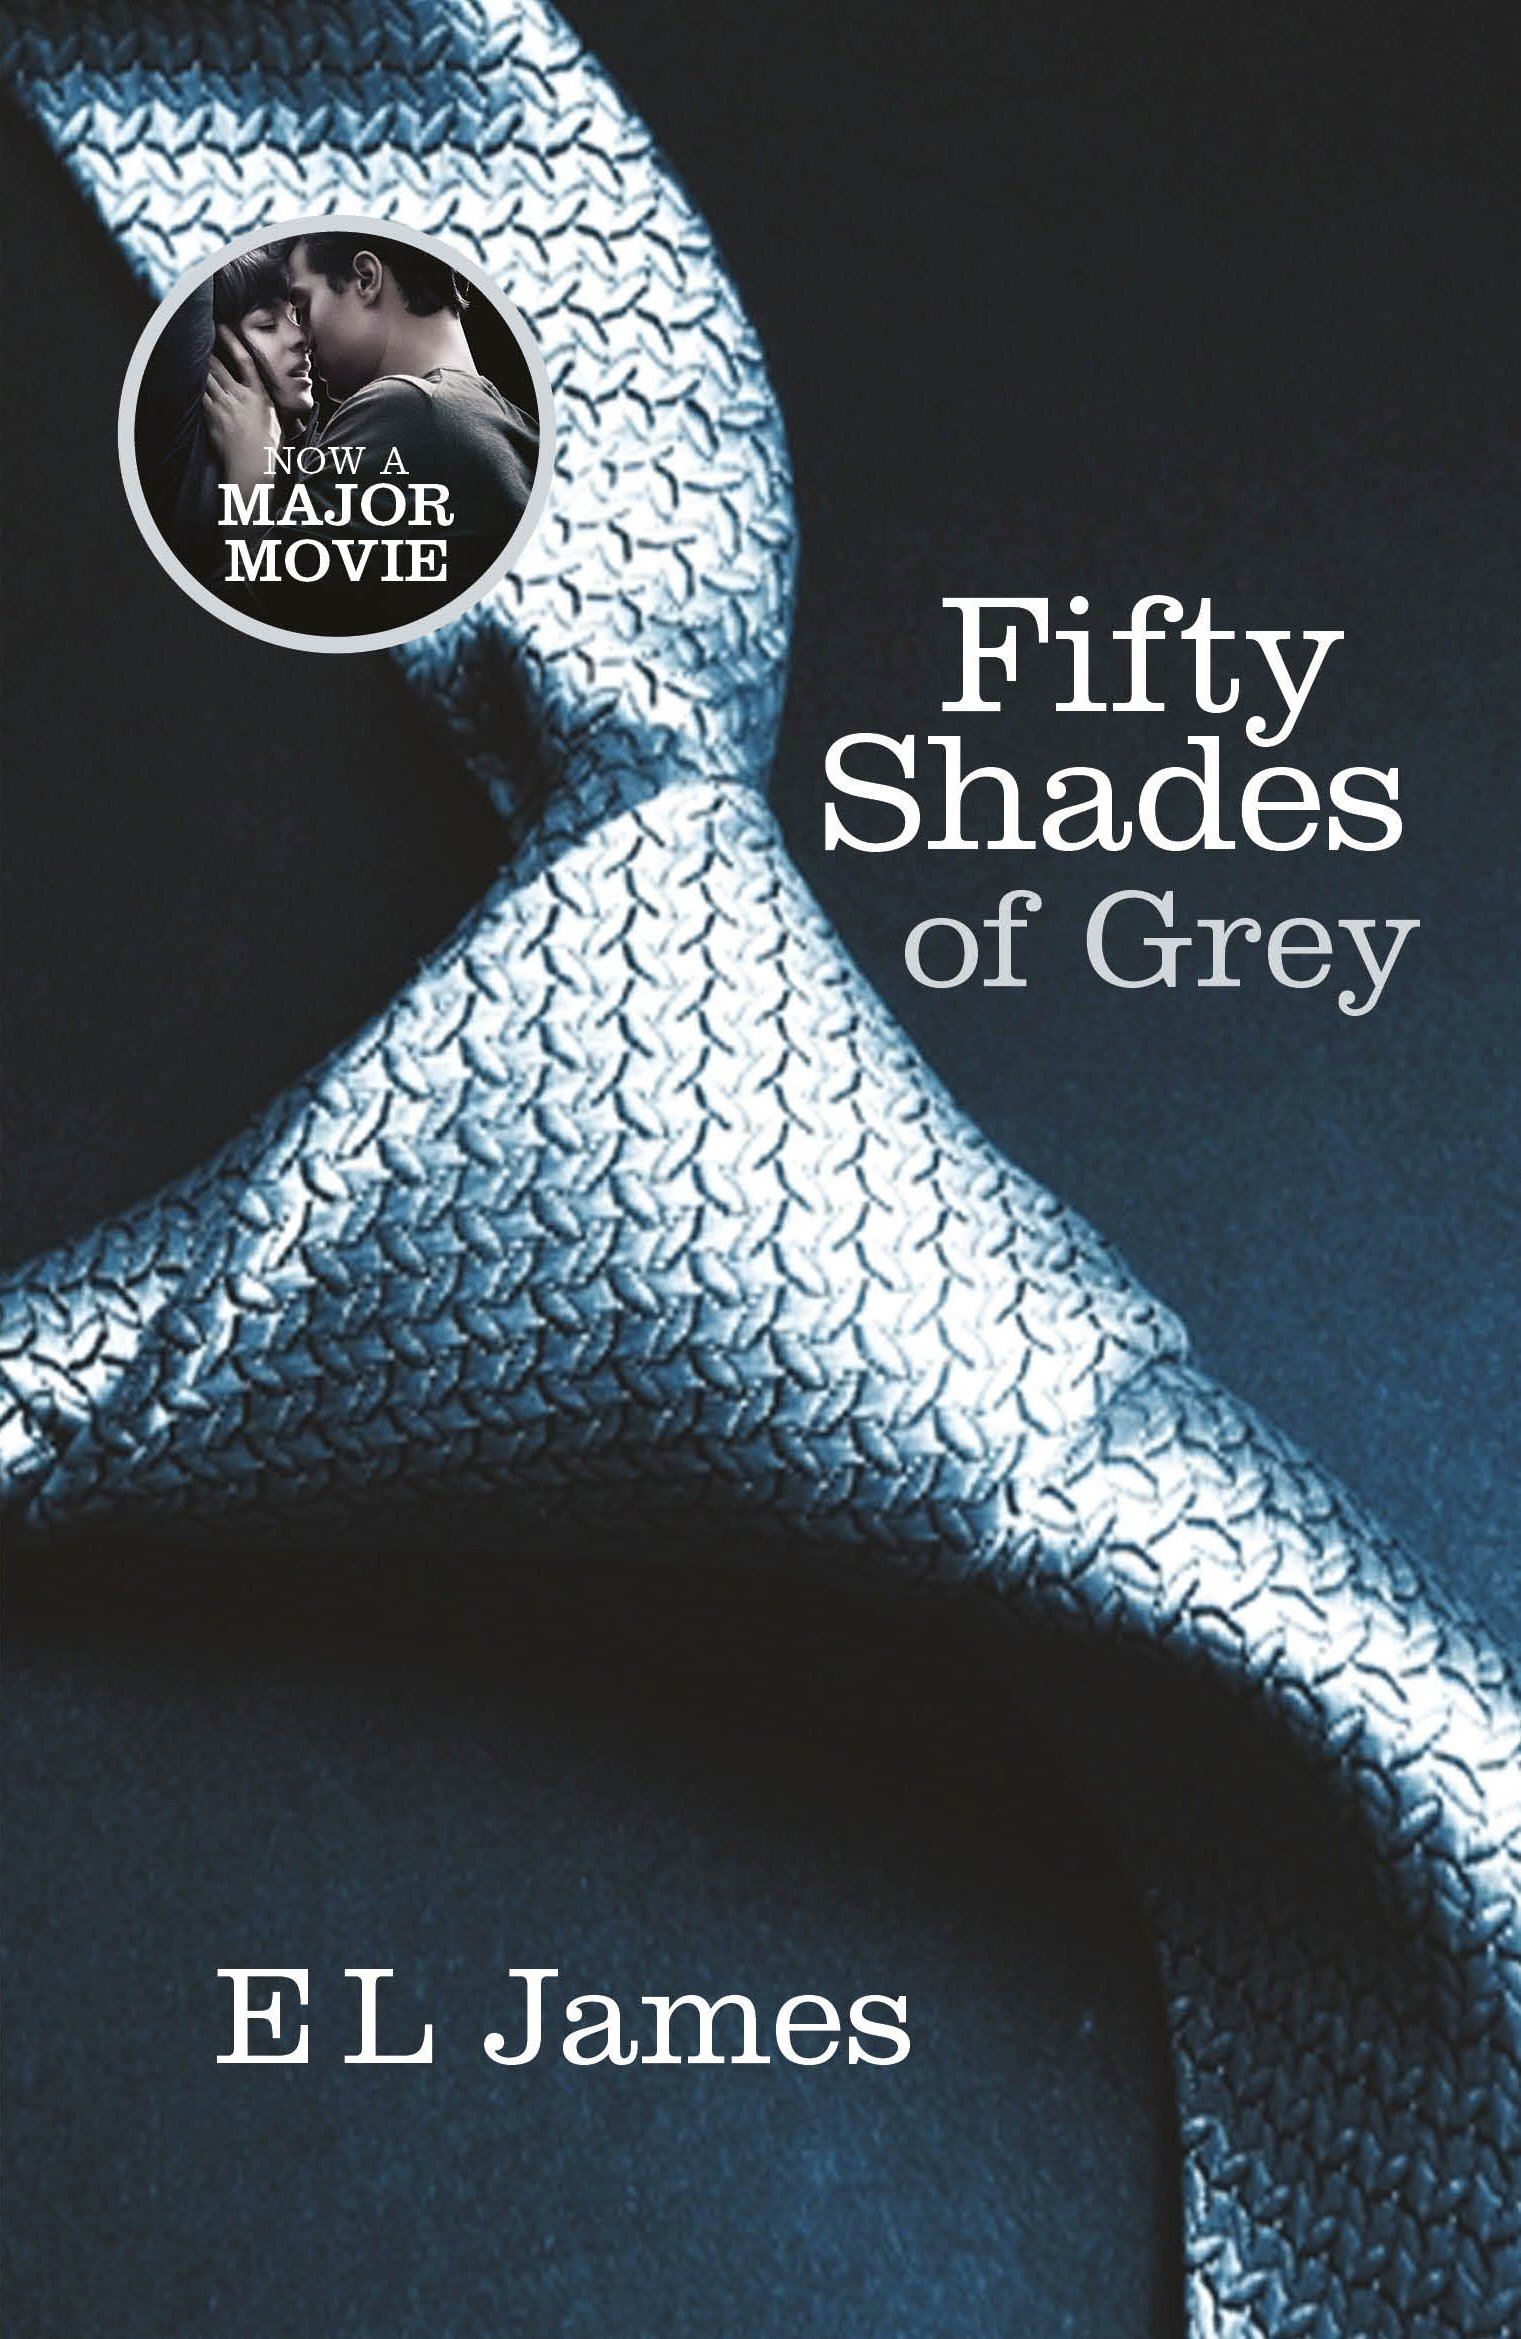 fifty shades of grey book 1 free download